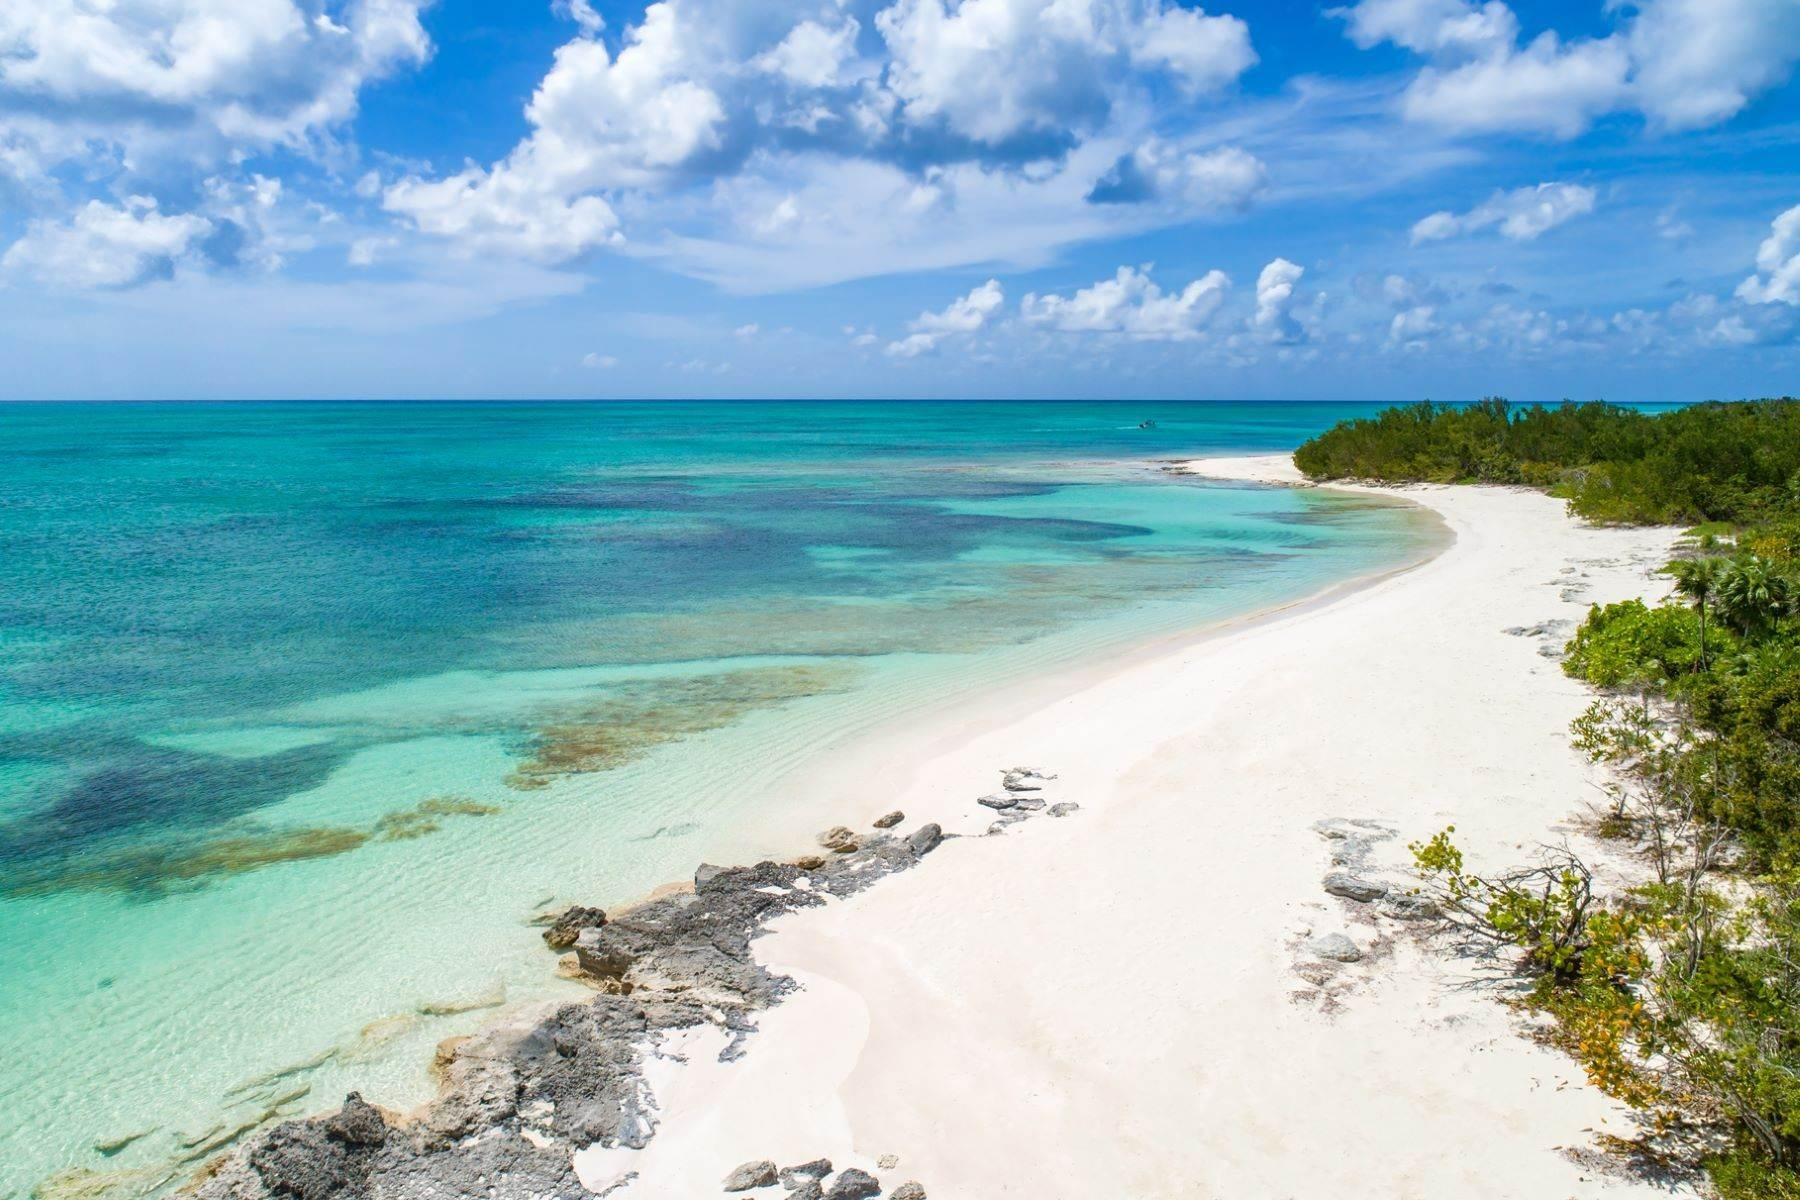 9. Land for Sale at Parrot Cay Estate Land 167, 168 & 169 Parrot Cay, Parrot Cay Turks And Caicos Islands